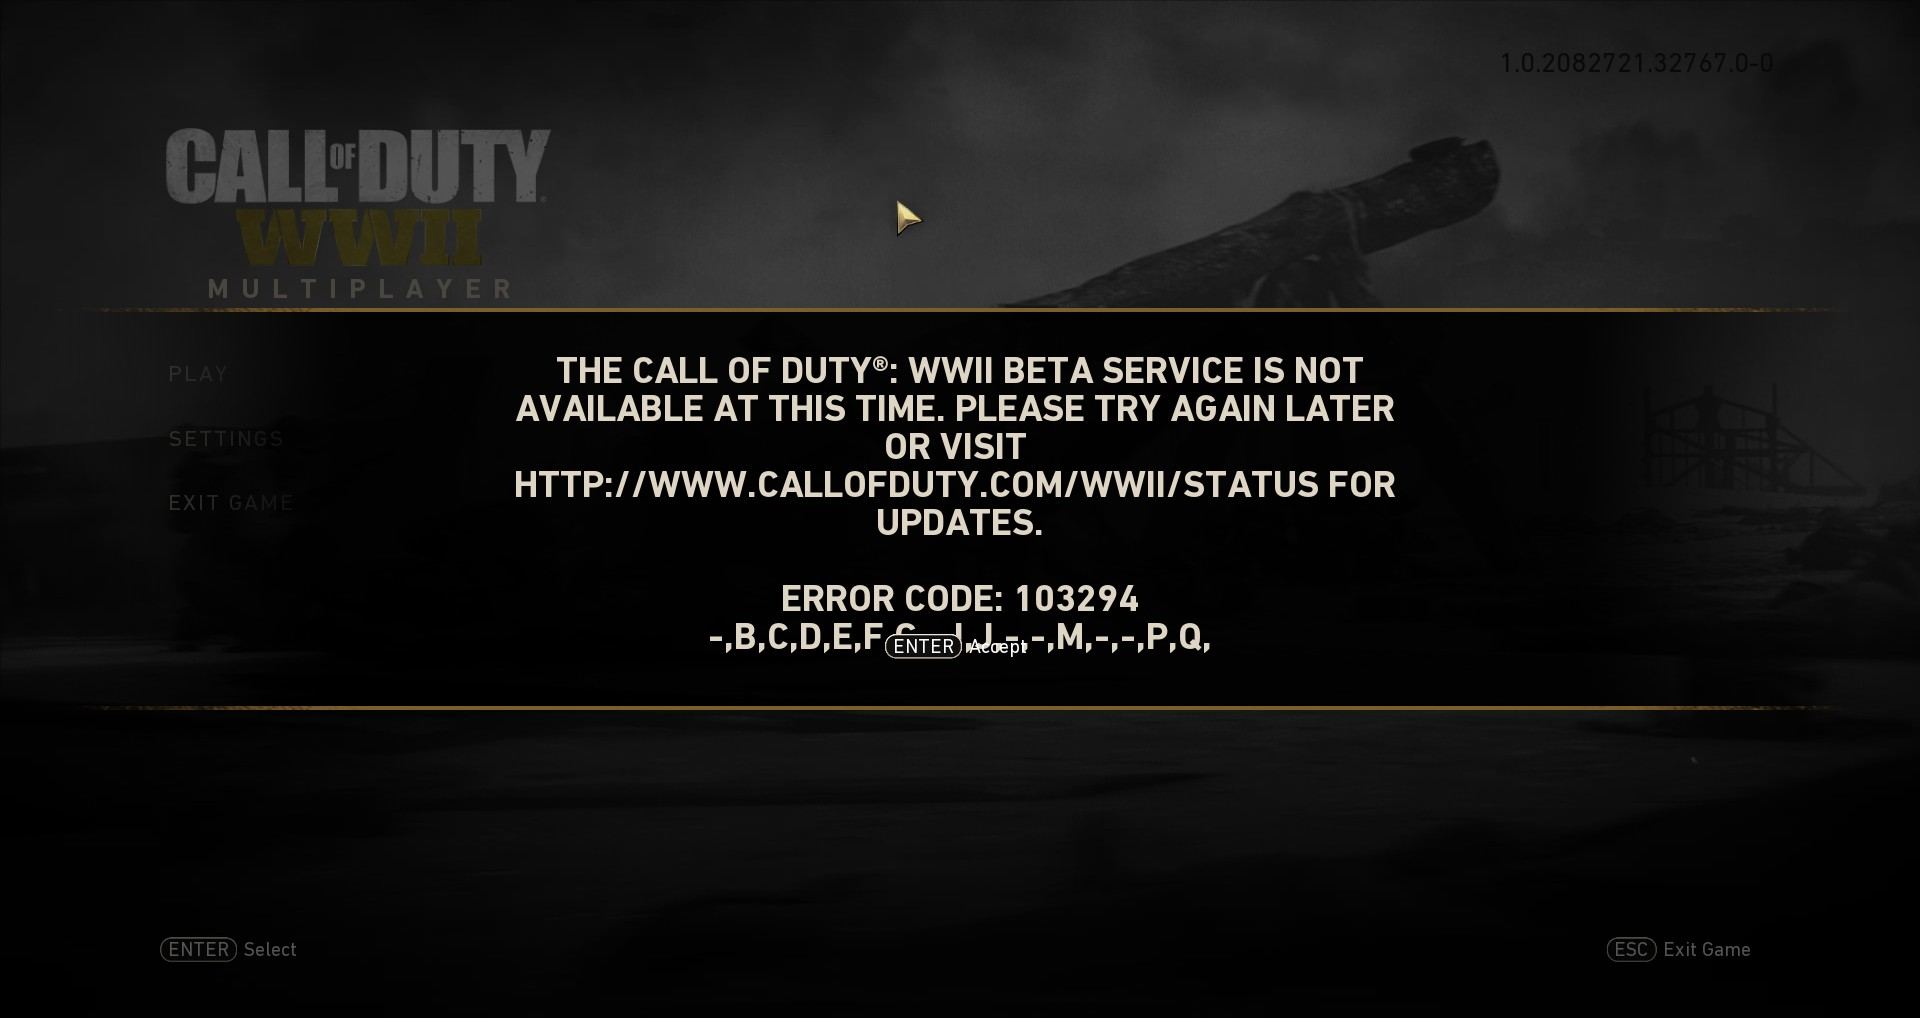 How to fix Call of Duty WW2 error code 103294?